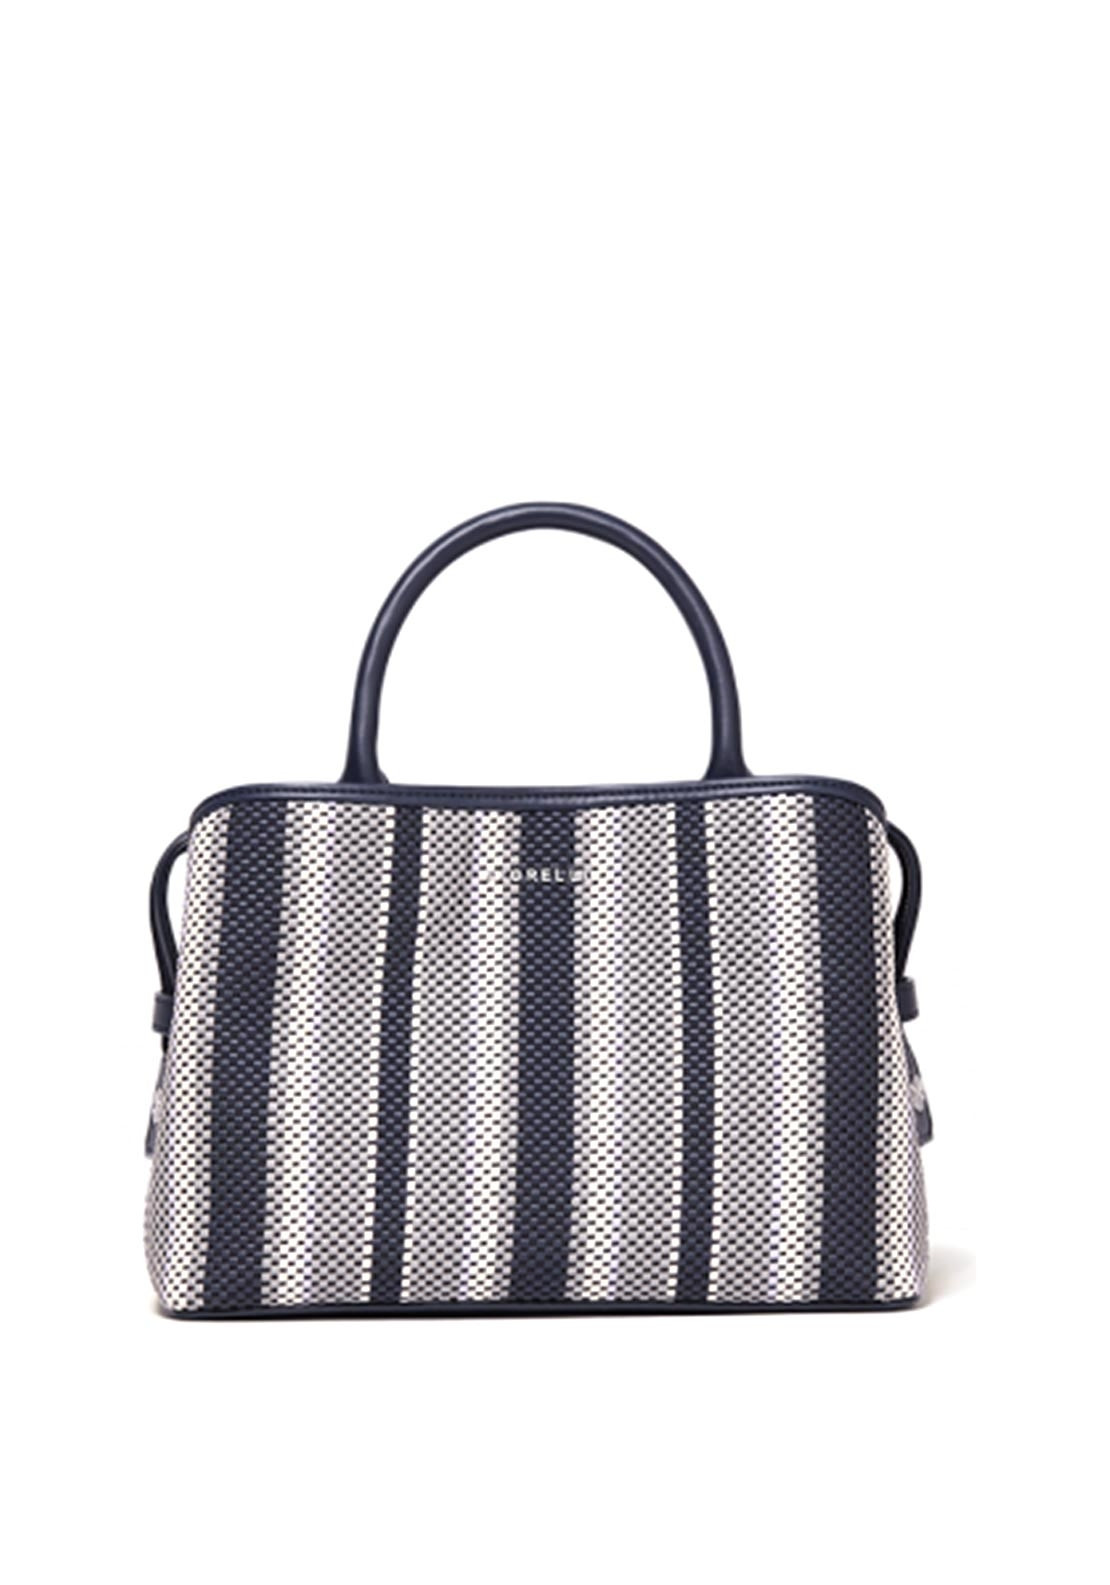 239c2dcff60c Fiorelli Bethnal Weave Mix Grab Bag, Navy. Be the first to review this  product